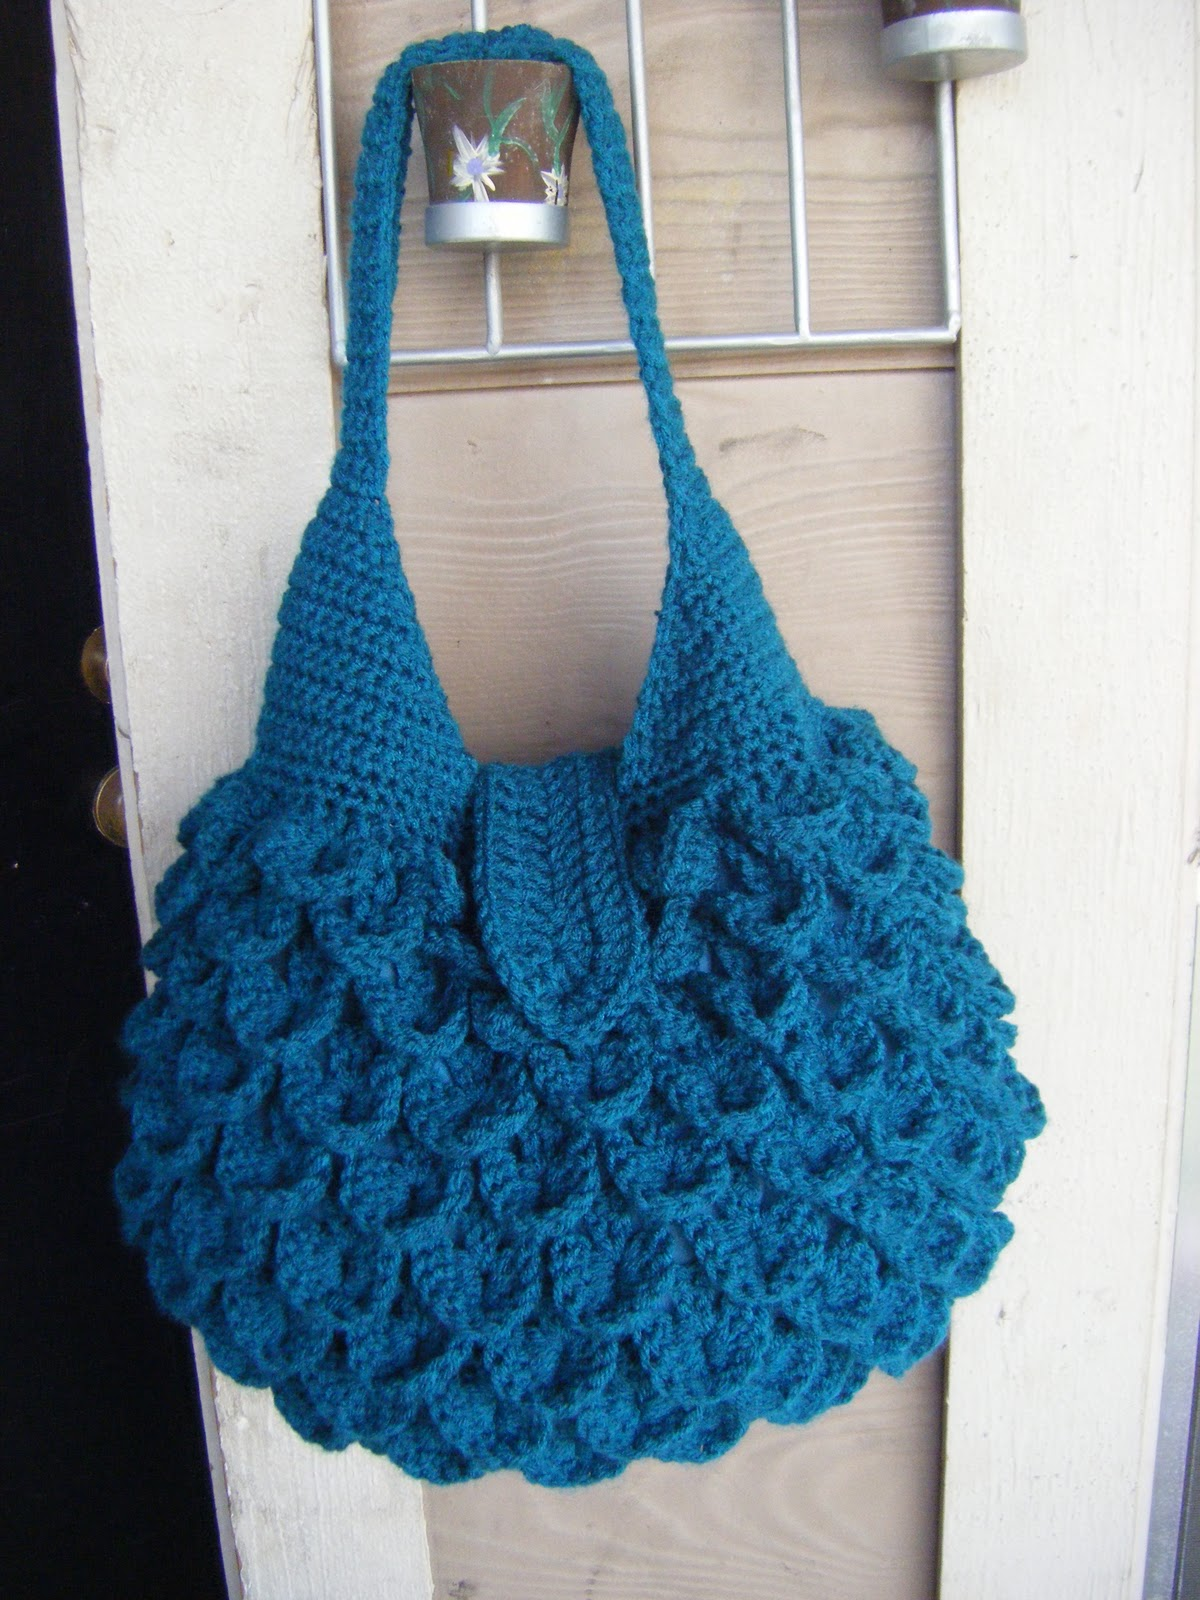 Crochet Tote Pattern Free : Free cat schoolbag crochet pattern ~ Amigurumi crochet patterns